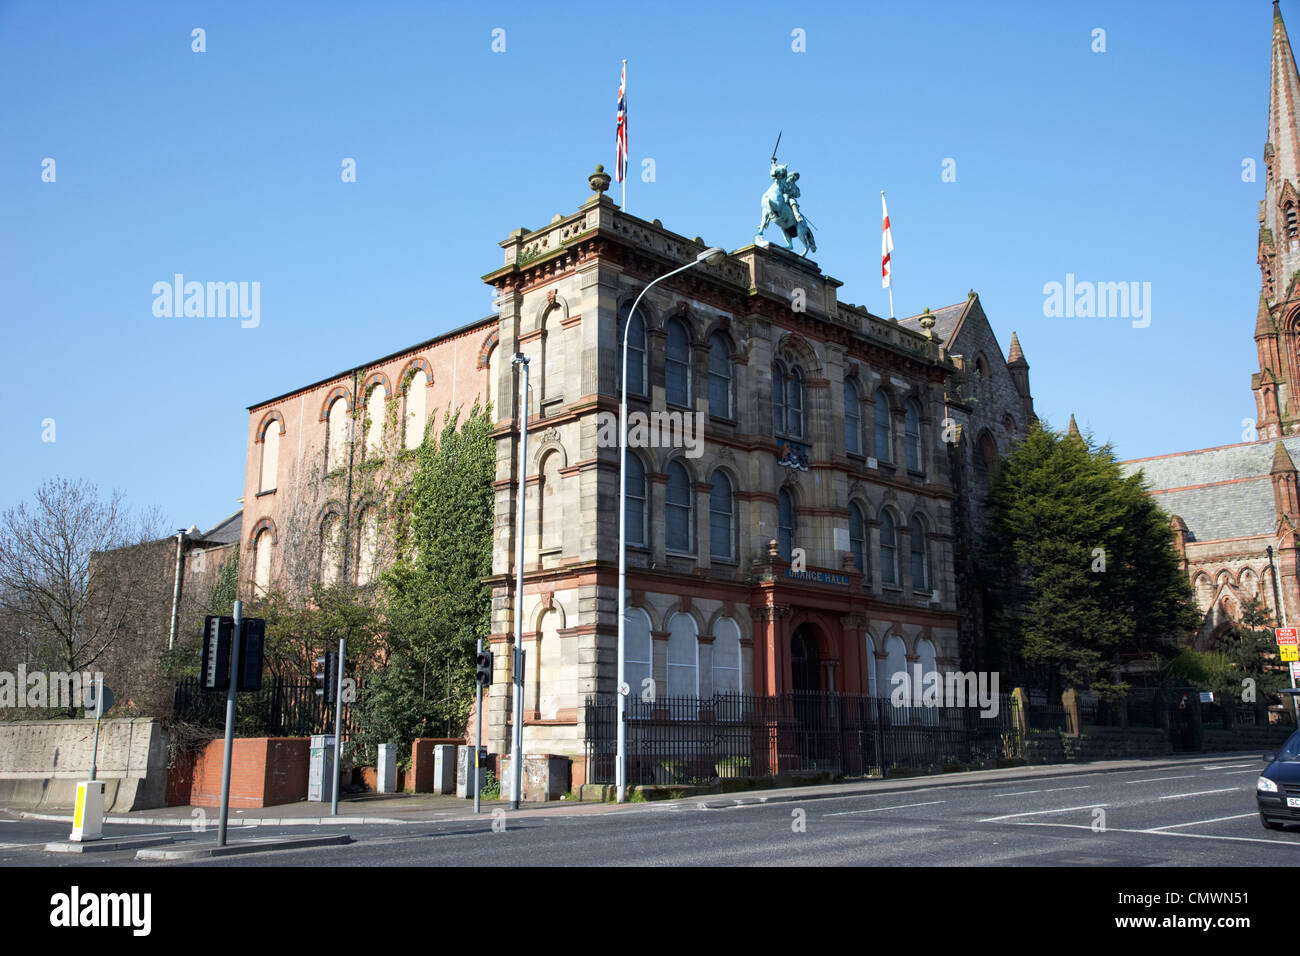 Clifton Street belfast Orange Hall with statue of king william on the top and stone facade Belfast Northern Ireland - Stock Image